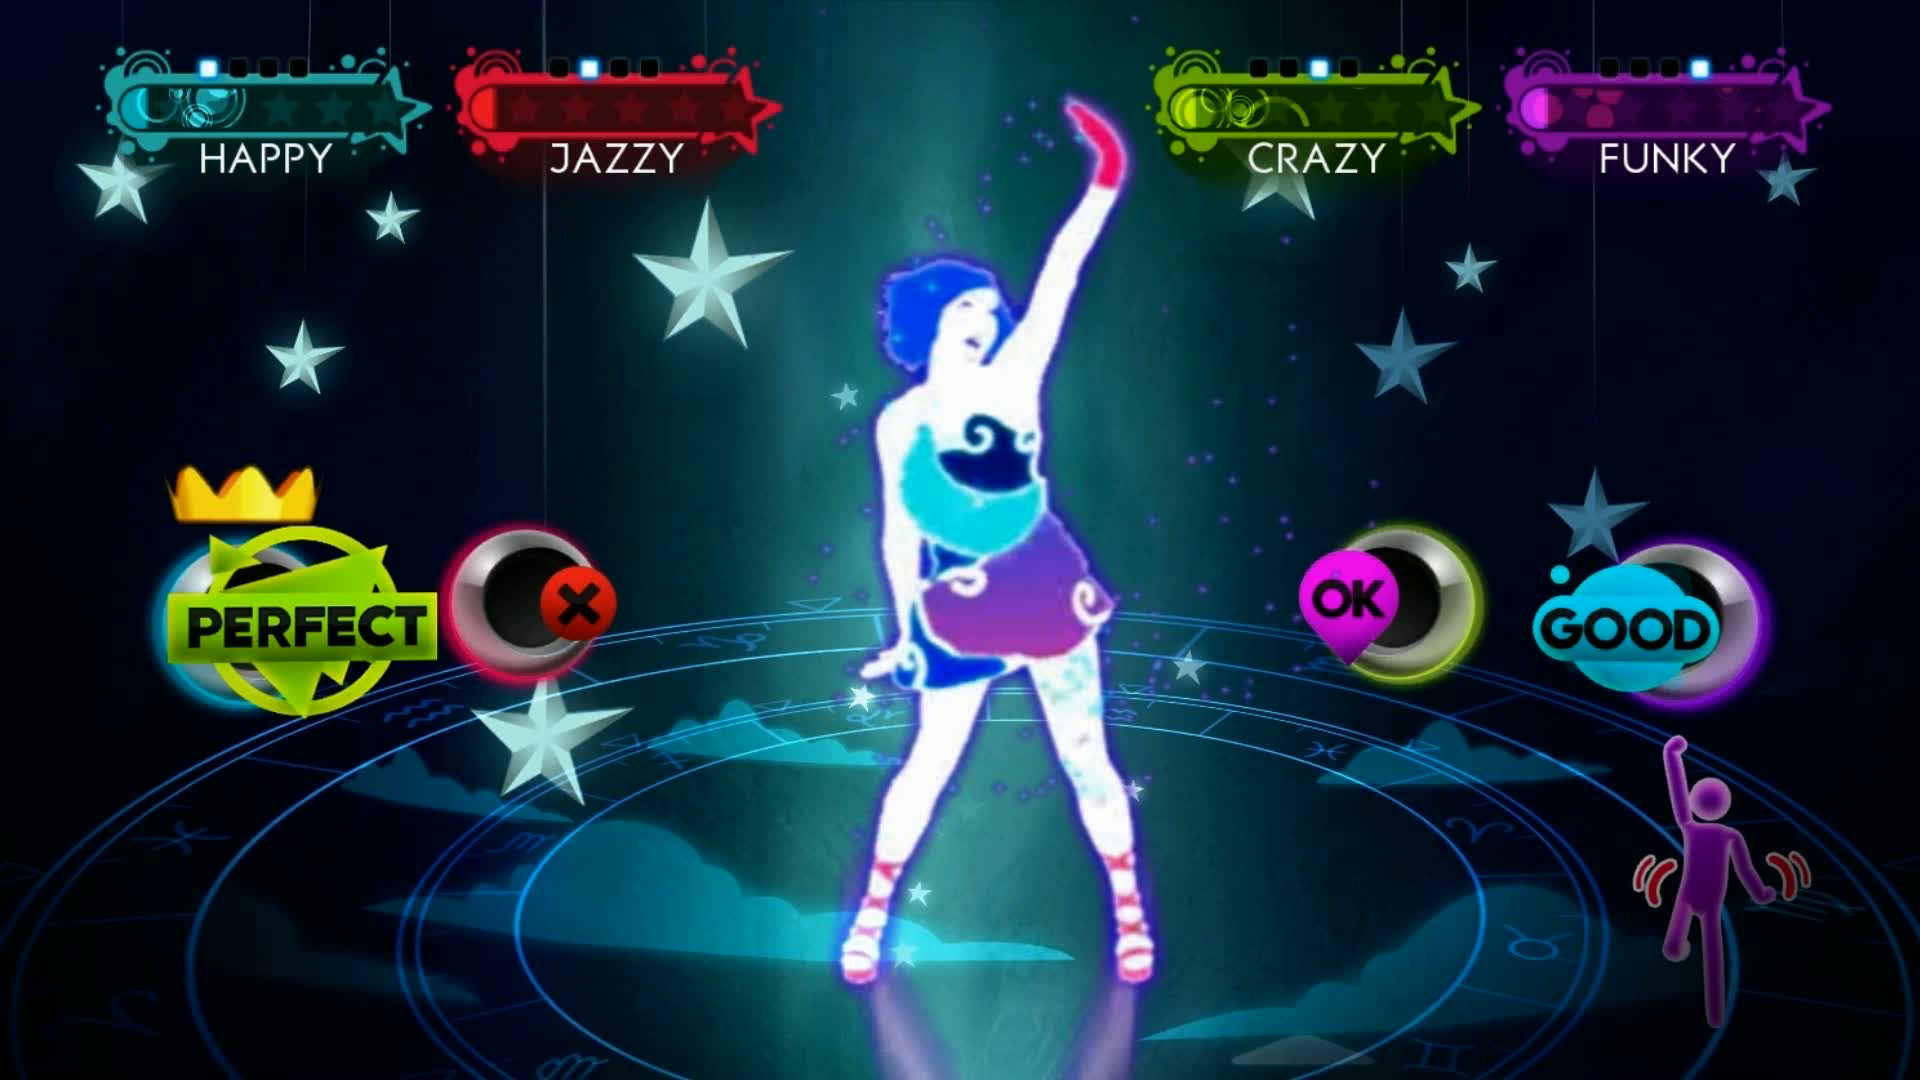 'Satelite' Video | Just Dance 3